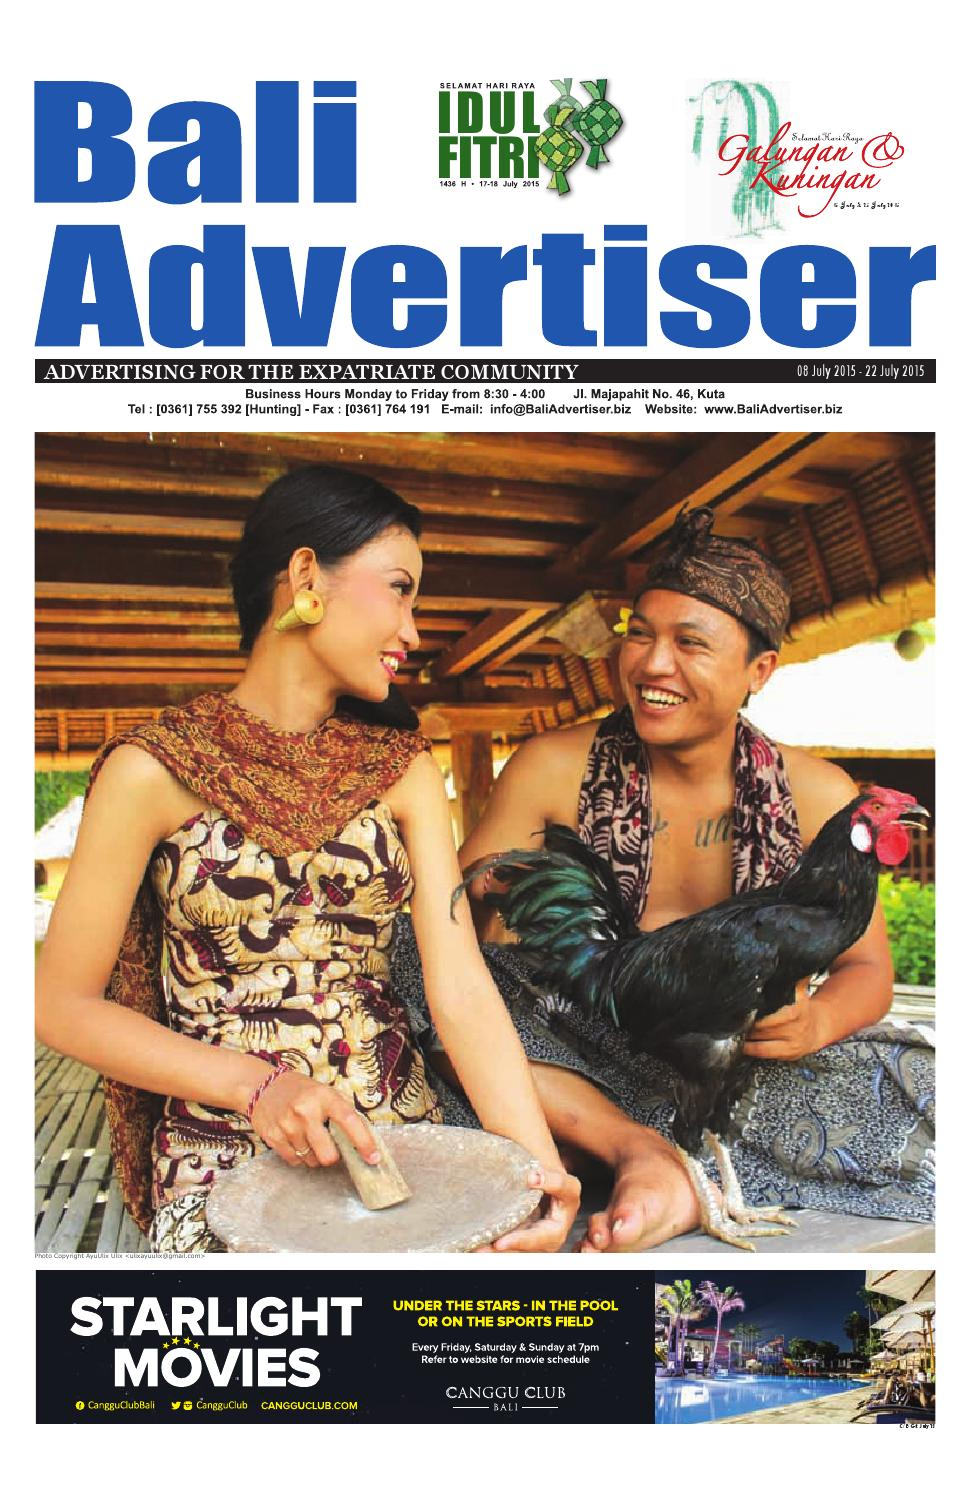 Ba 08 July 2015 By Bali Advertiser Issuu Baruu Map Voucher 25juta Bonus 50k